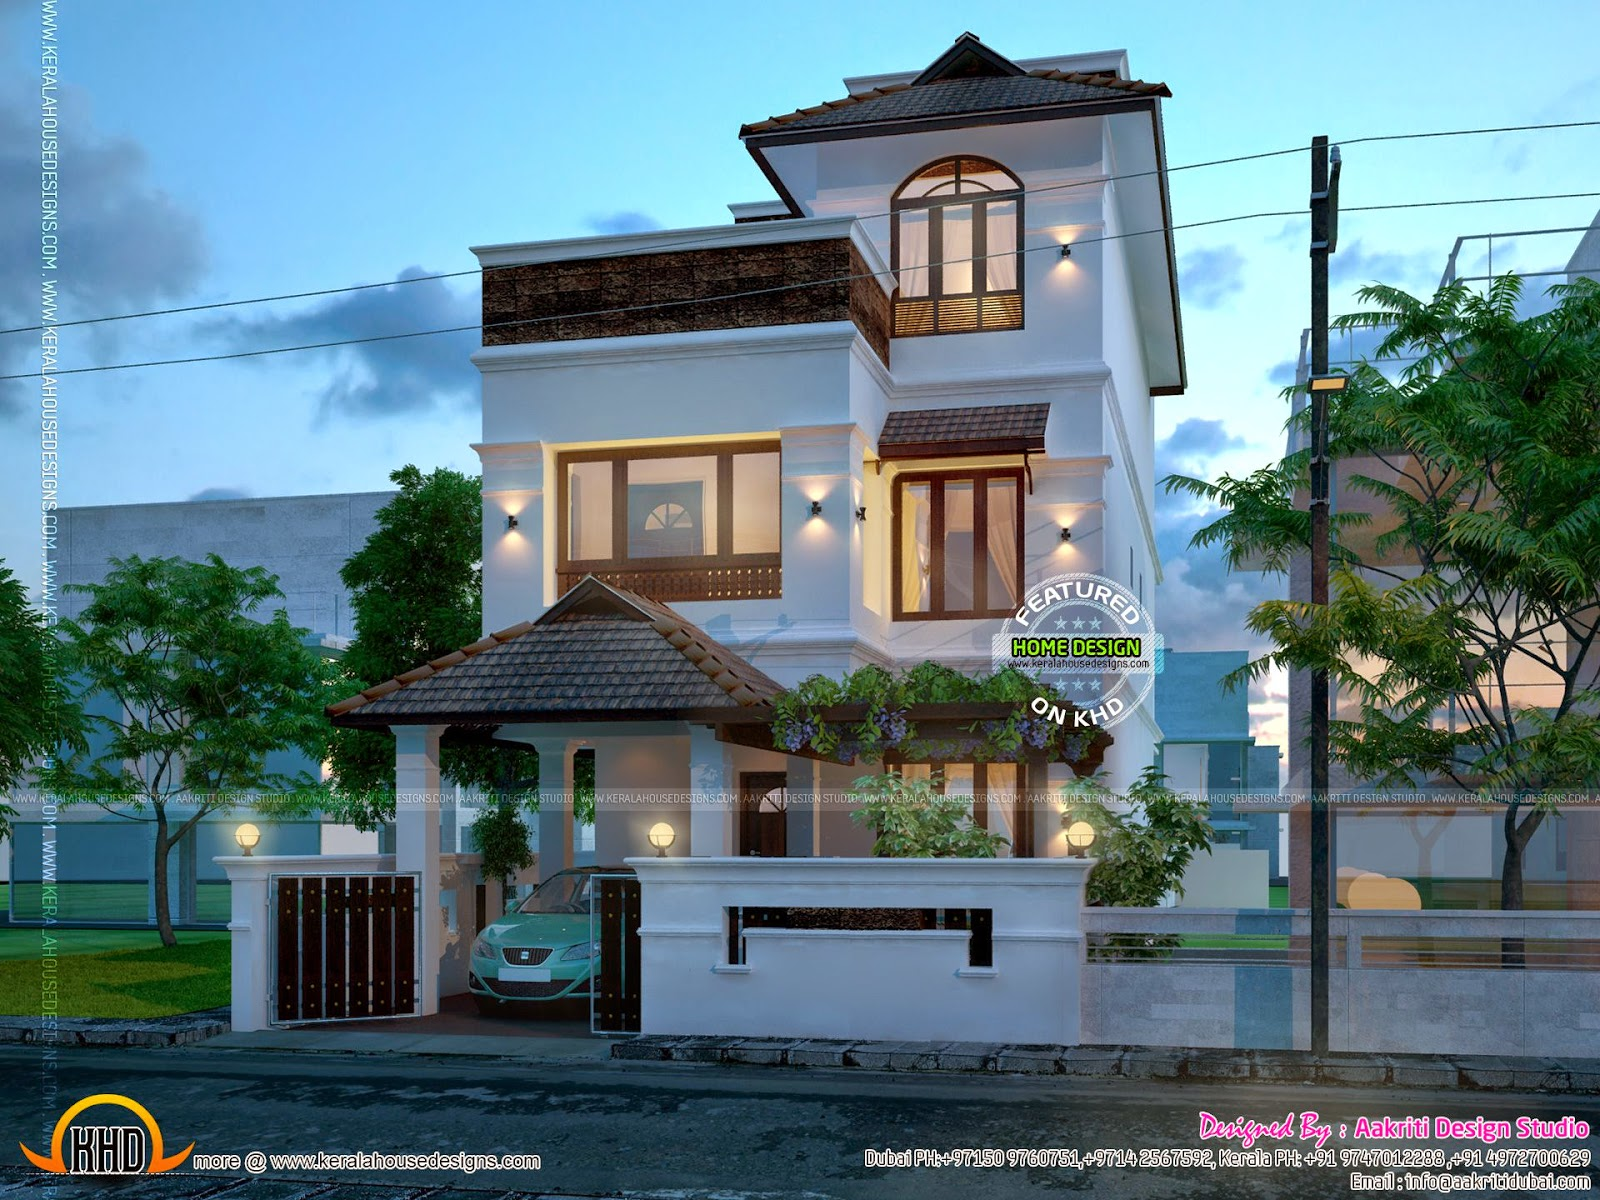 New house design kerala home design and floor plans for Design house